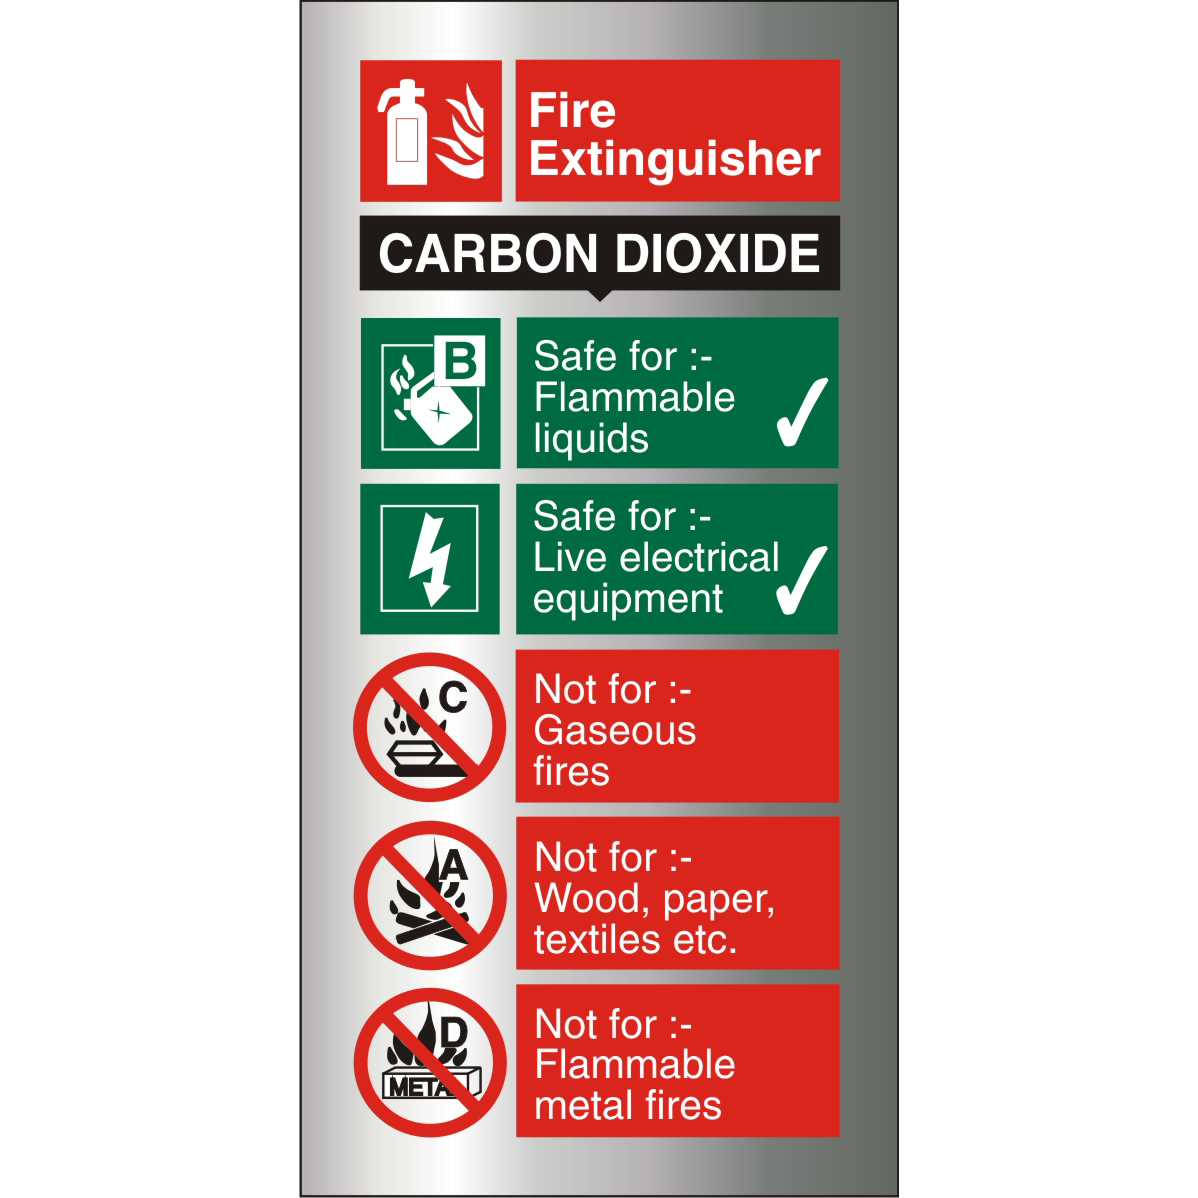 Brushed Alu Comp Sign 100x200 1.5mm S/A Fire Extinguisher CO2 Ref BAFF093100x200 Up to 10 Day Leadtime